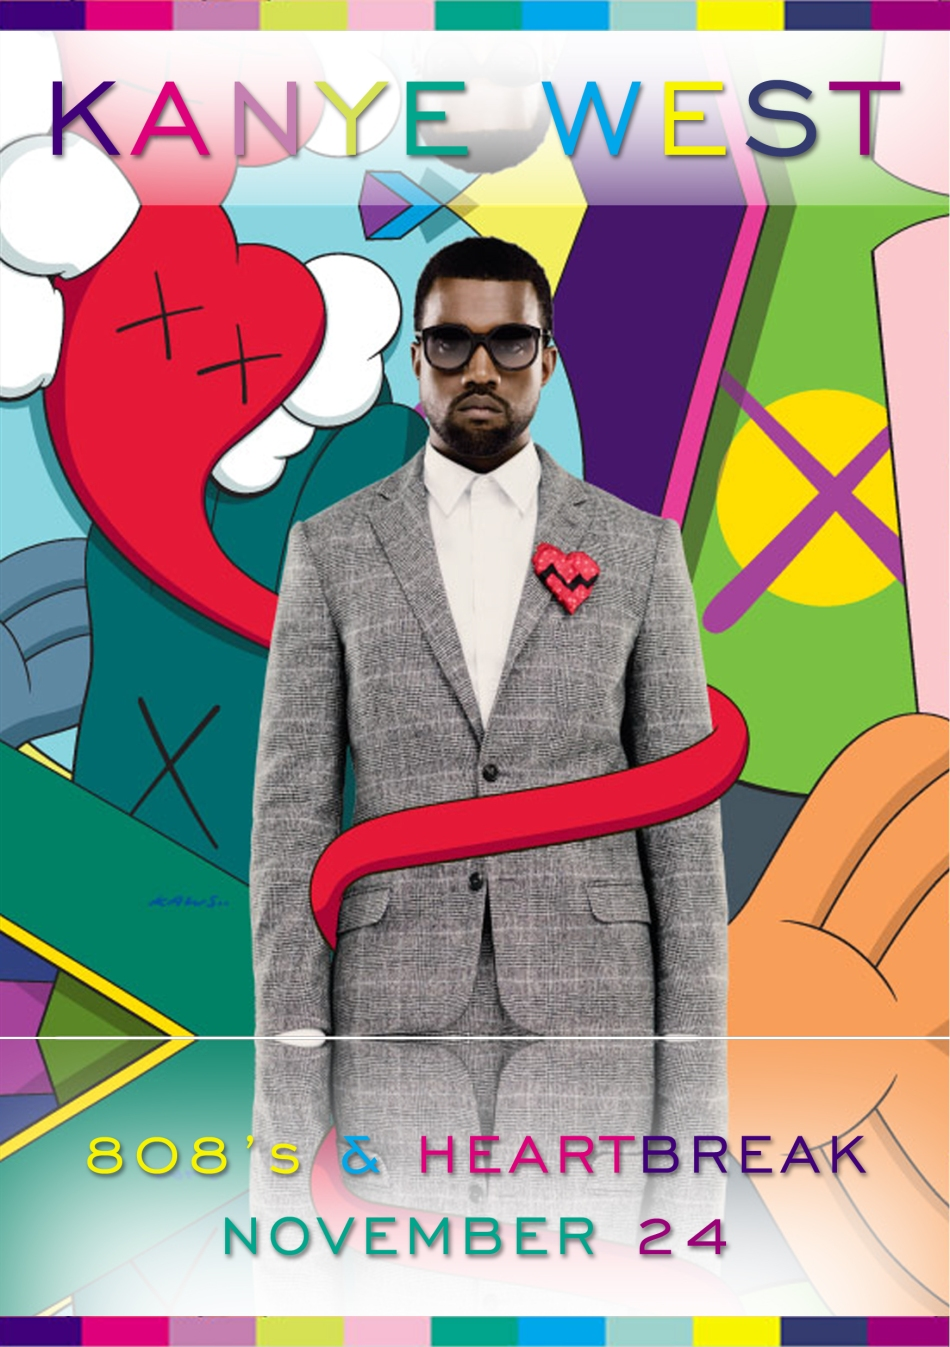 O aguardado álbum 808s & Heartbreak, de Kanye West